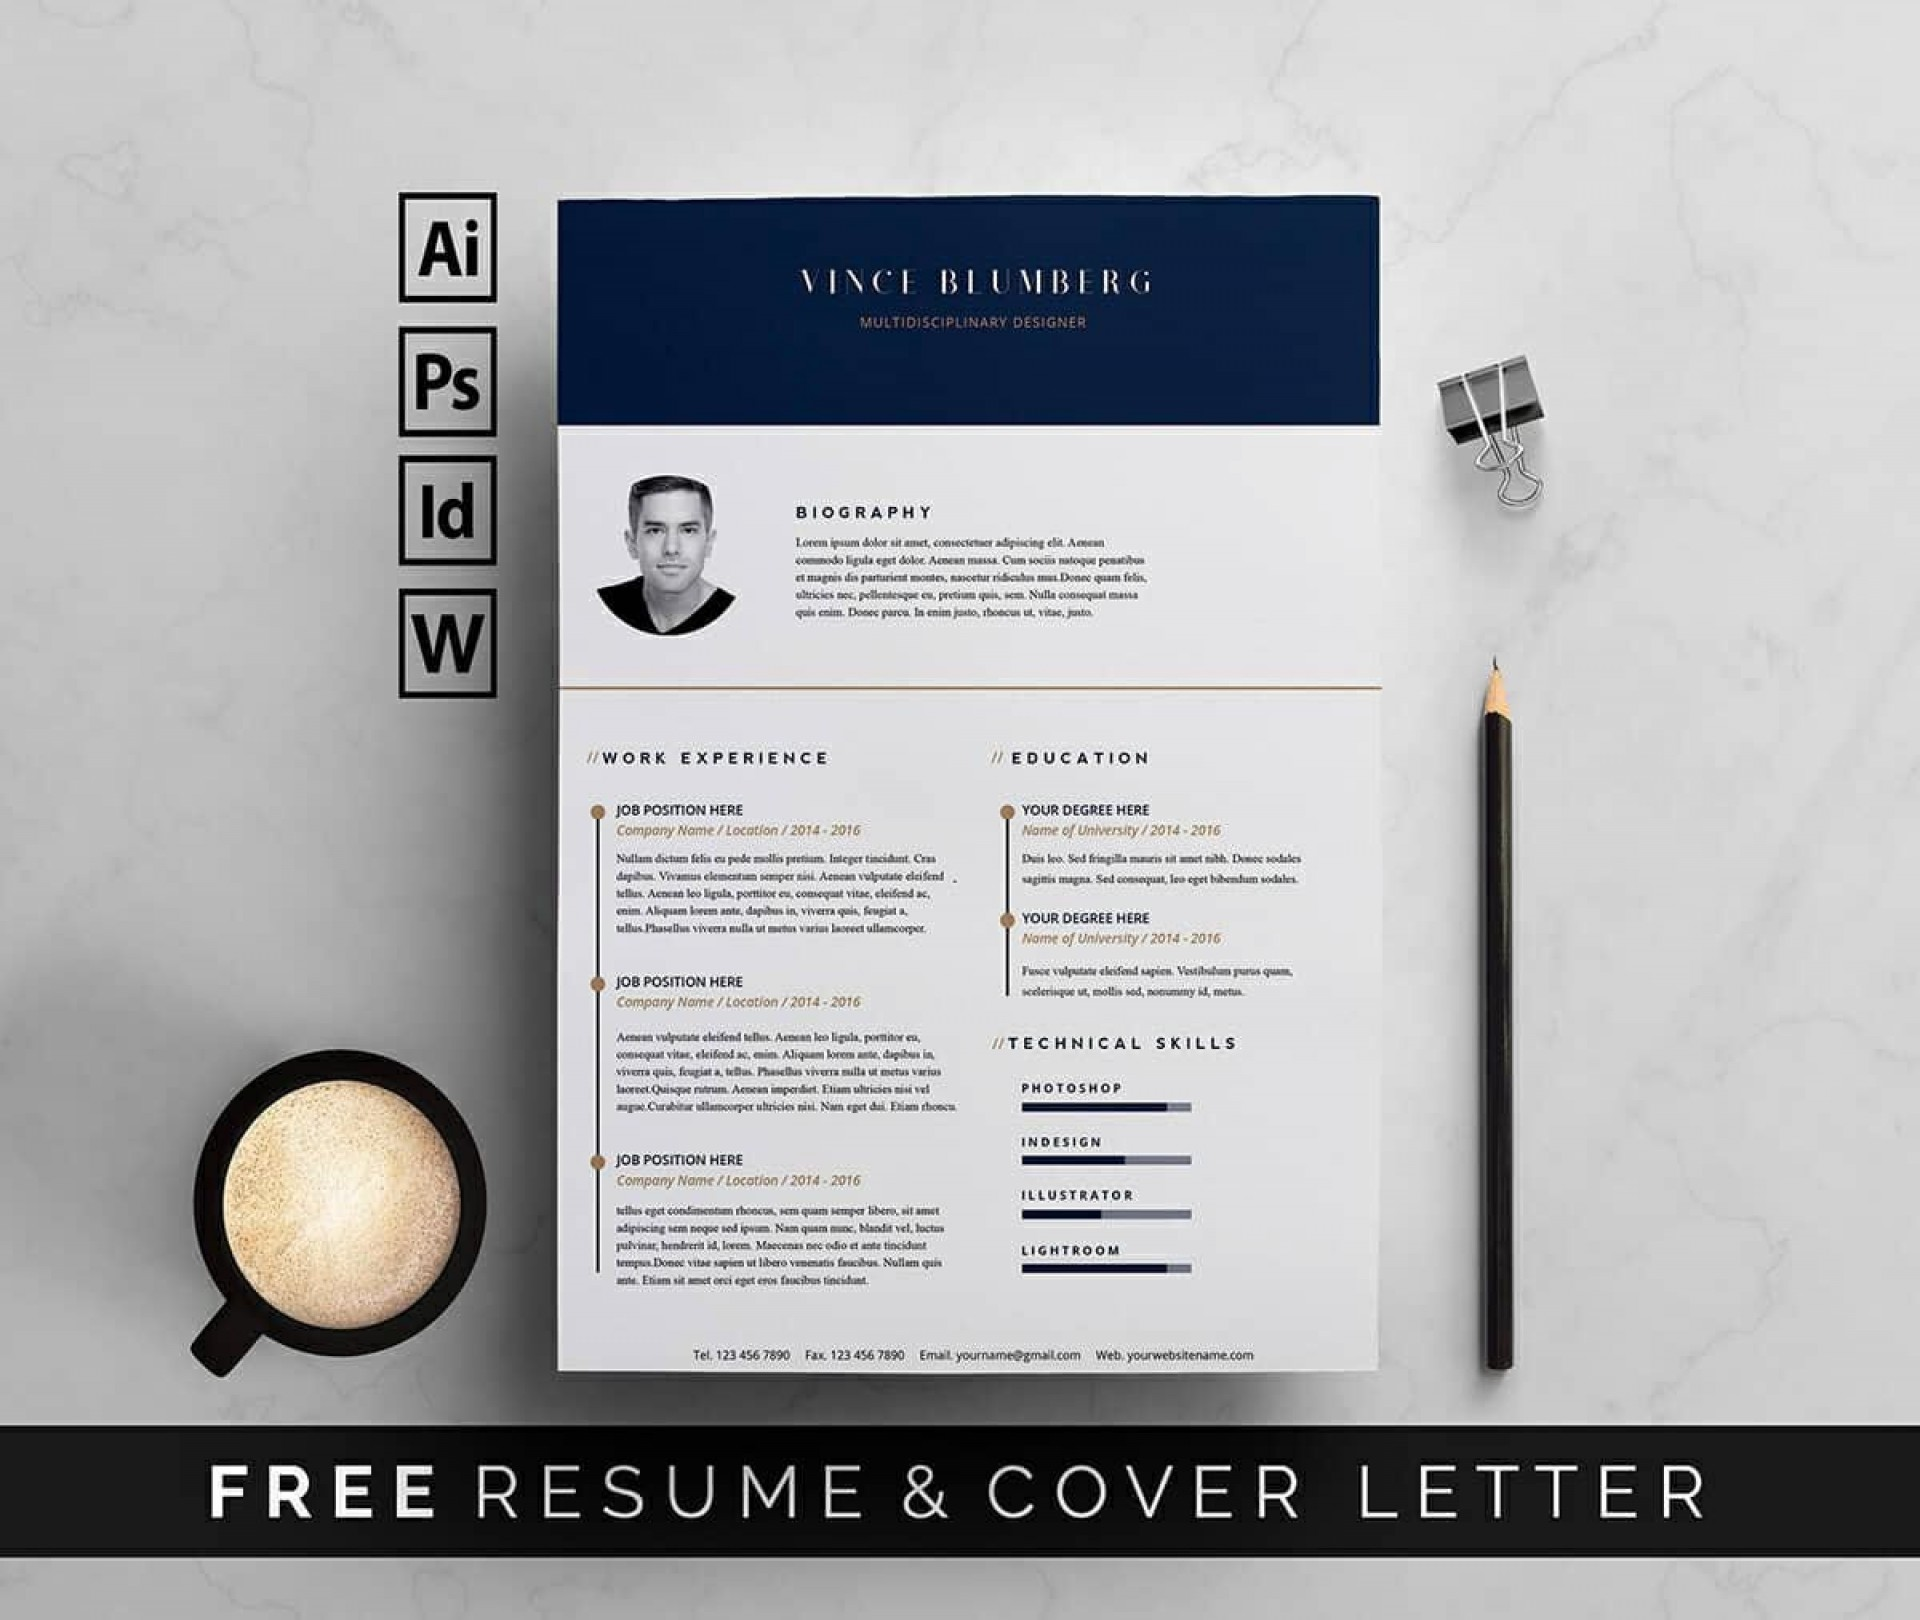 009 Dreaded Resume Template Free Word Picture  Download Cv 2020 Format1920